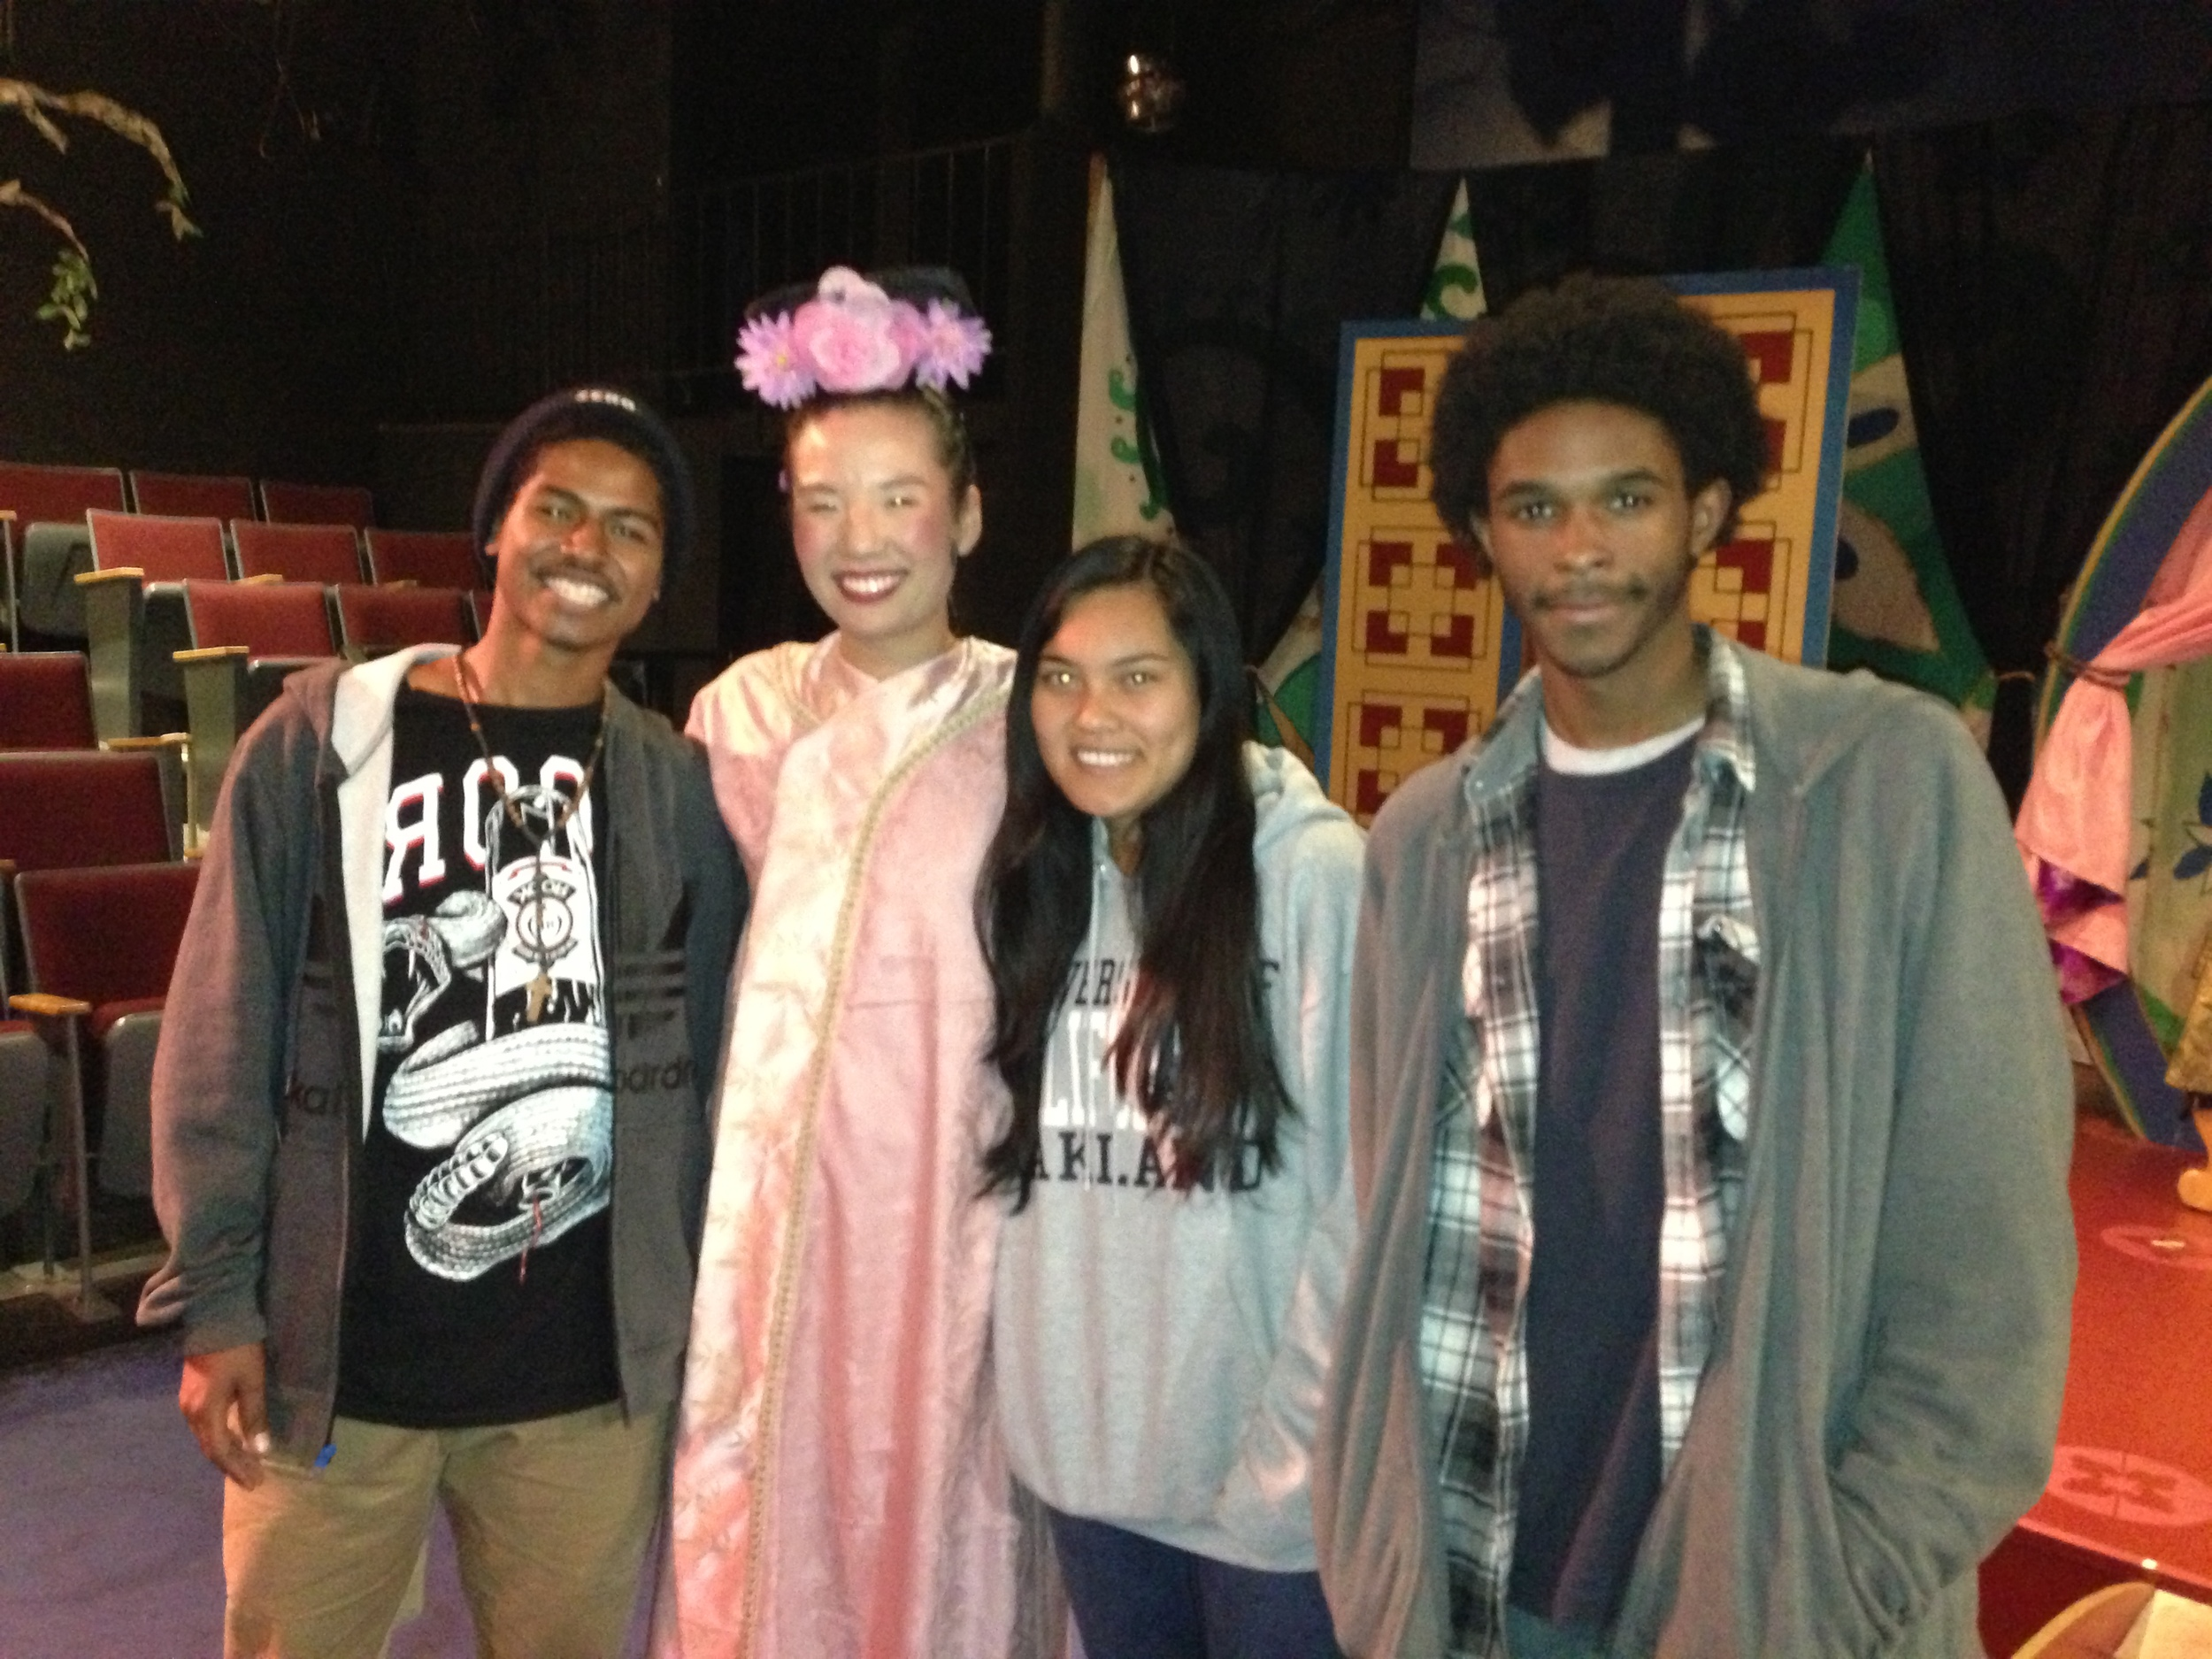 Ji-Yun Kim (second from the left) with former students (from left to right)   Roy Christopher, Tina Tieng, and Rashond Grant .